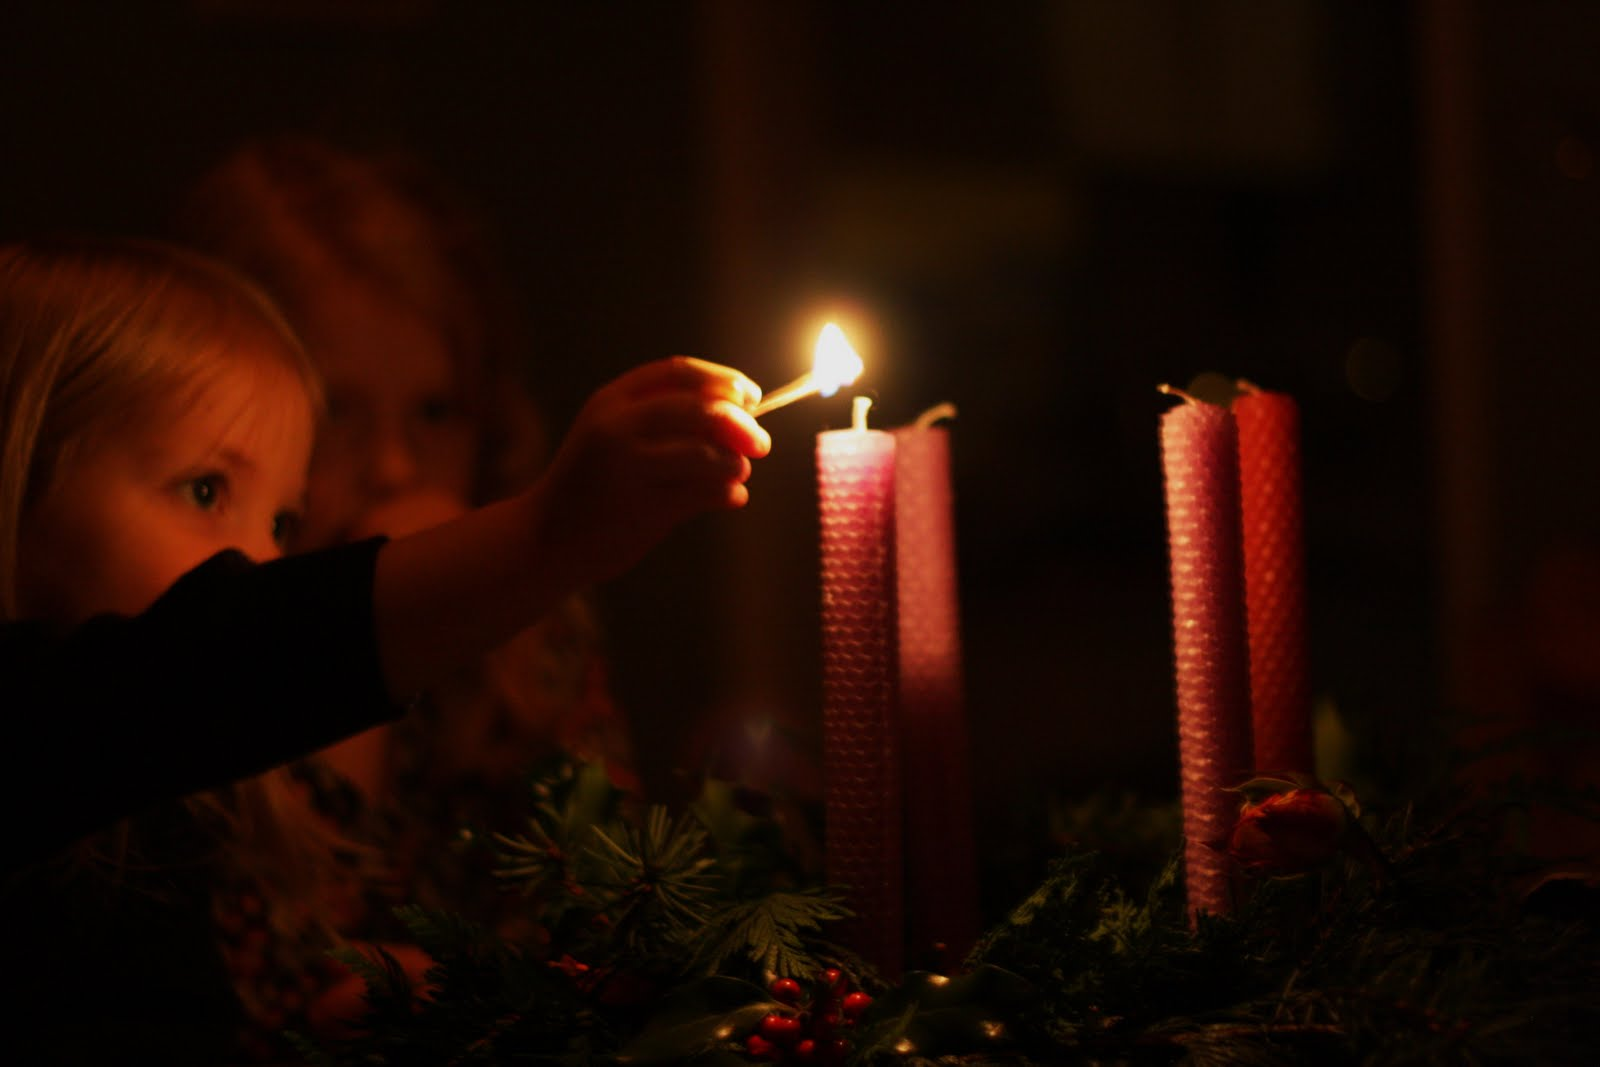 & Frontier Dreams: Rhythm In Our Home : The First Sunday in Advent